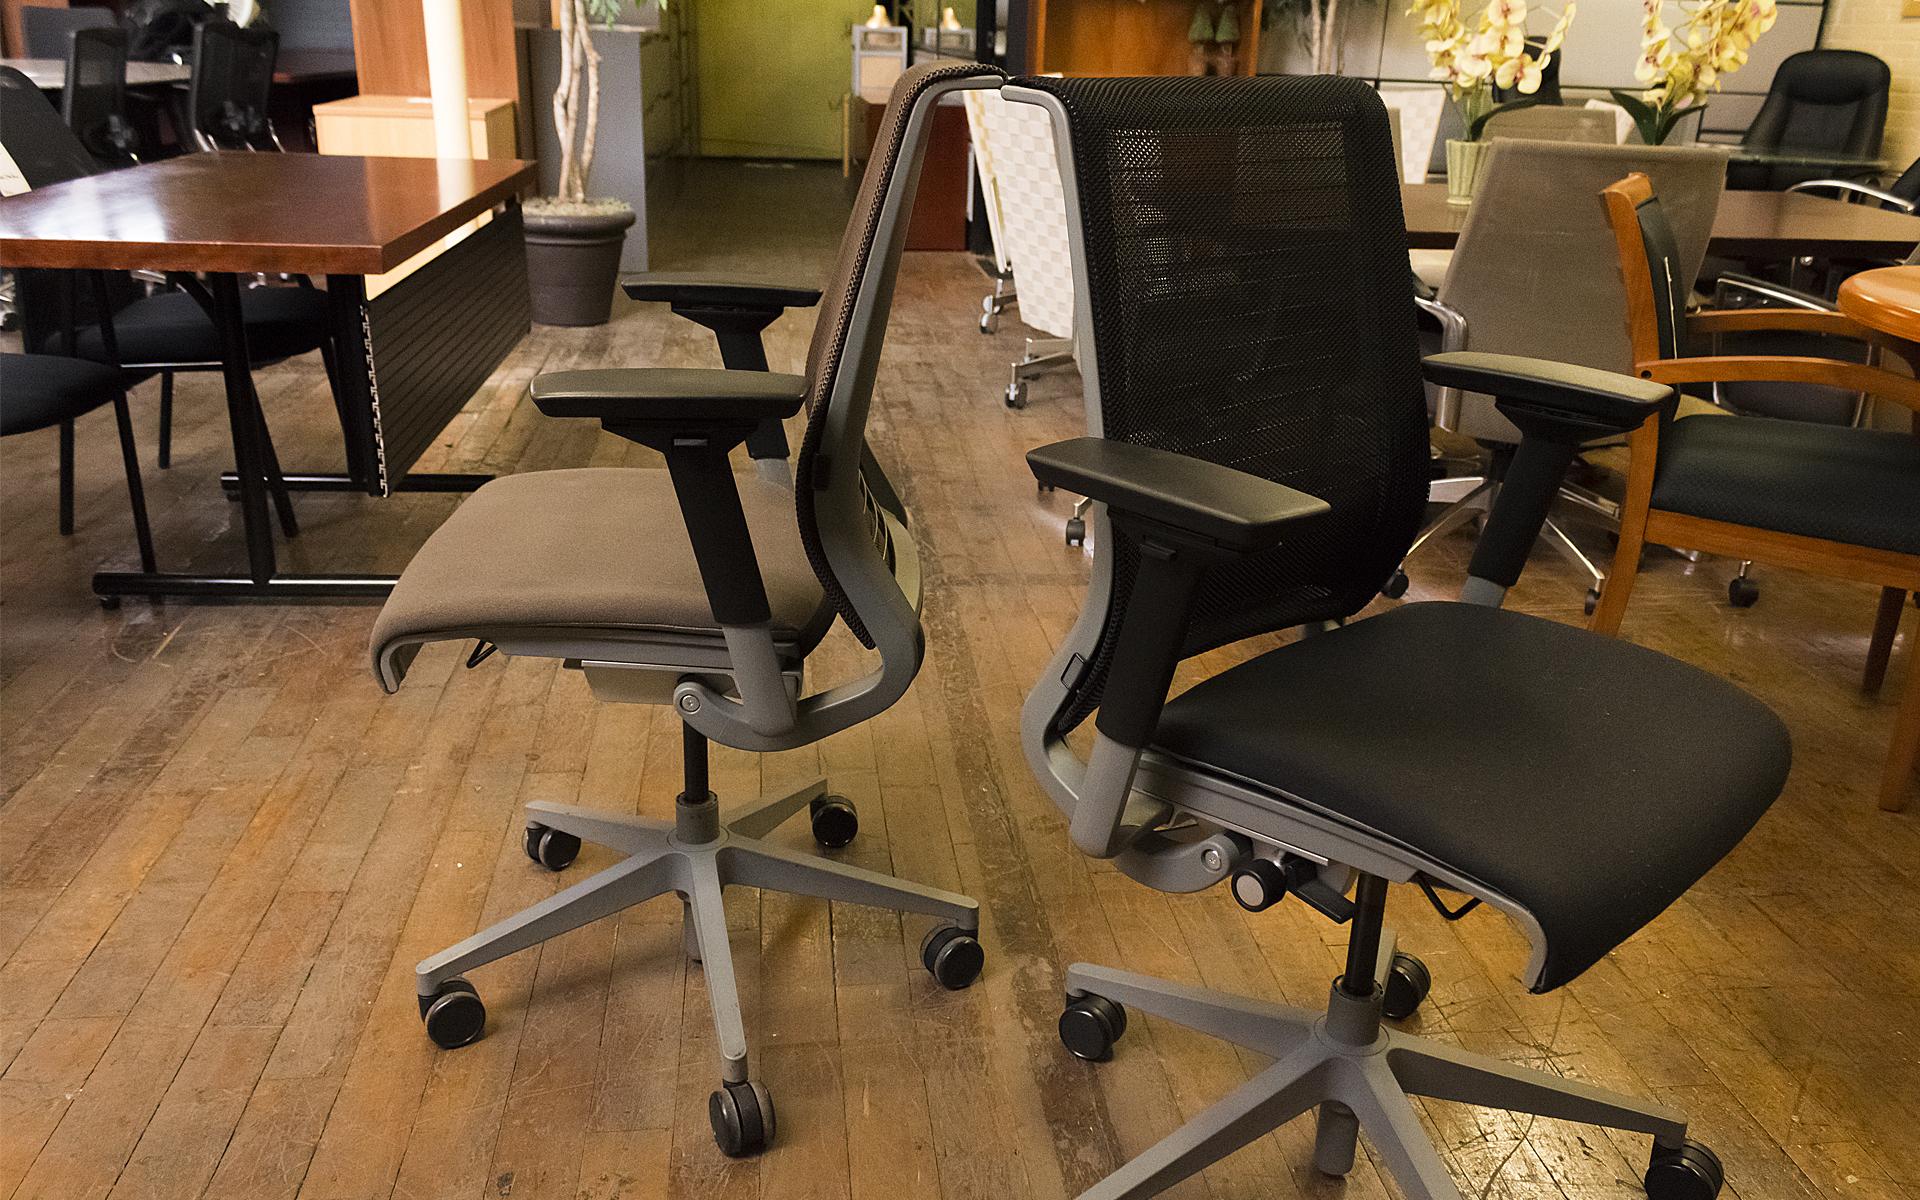 peartreeofficefurniture_peartreeofficefurniture_think3.jpg